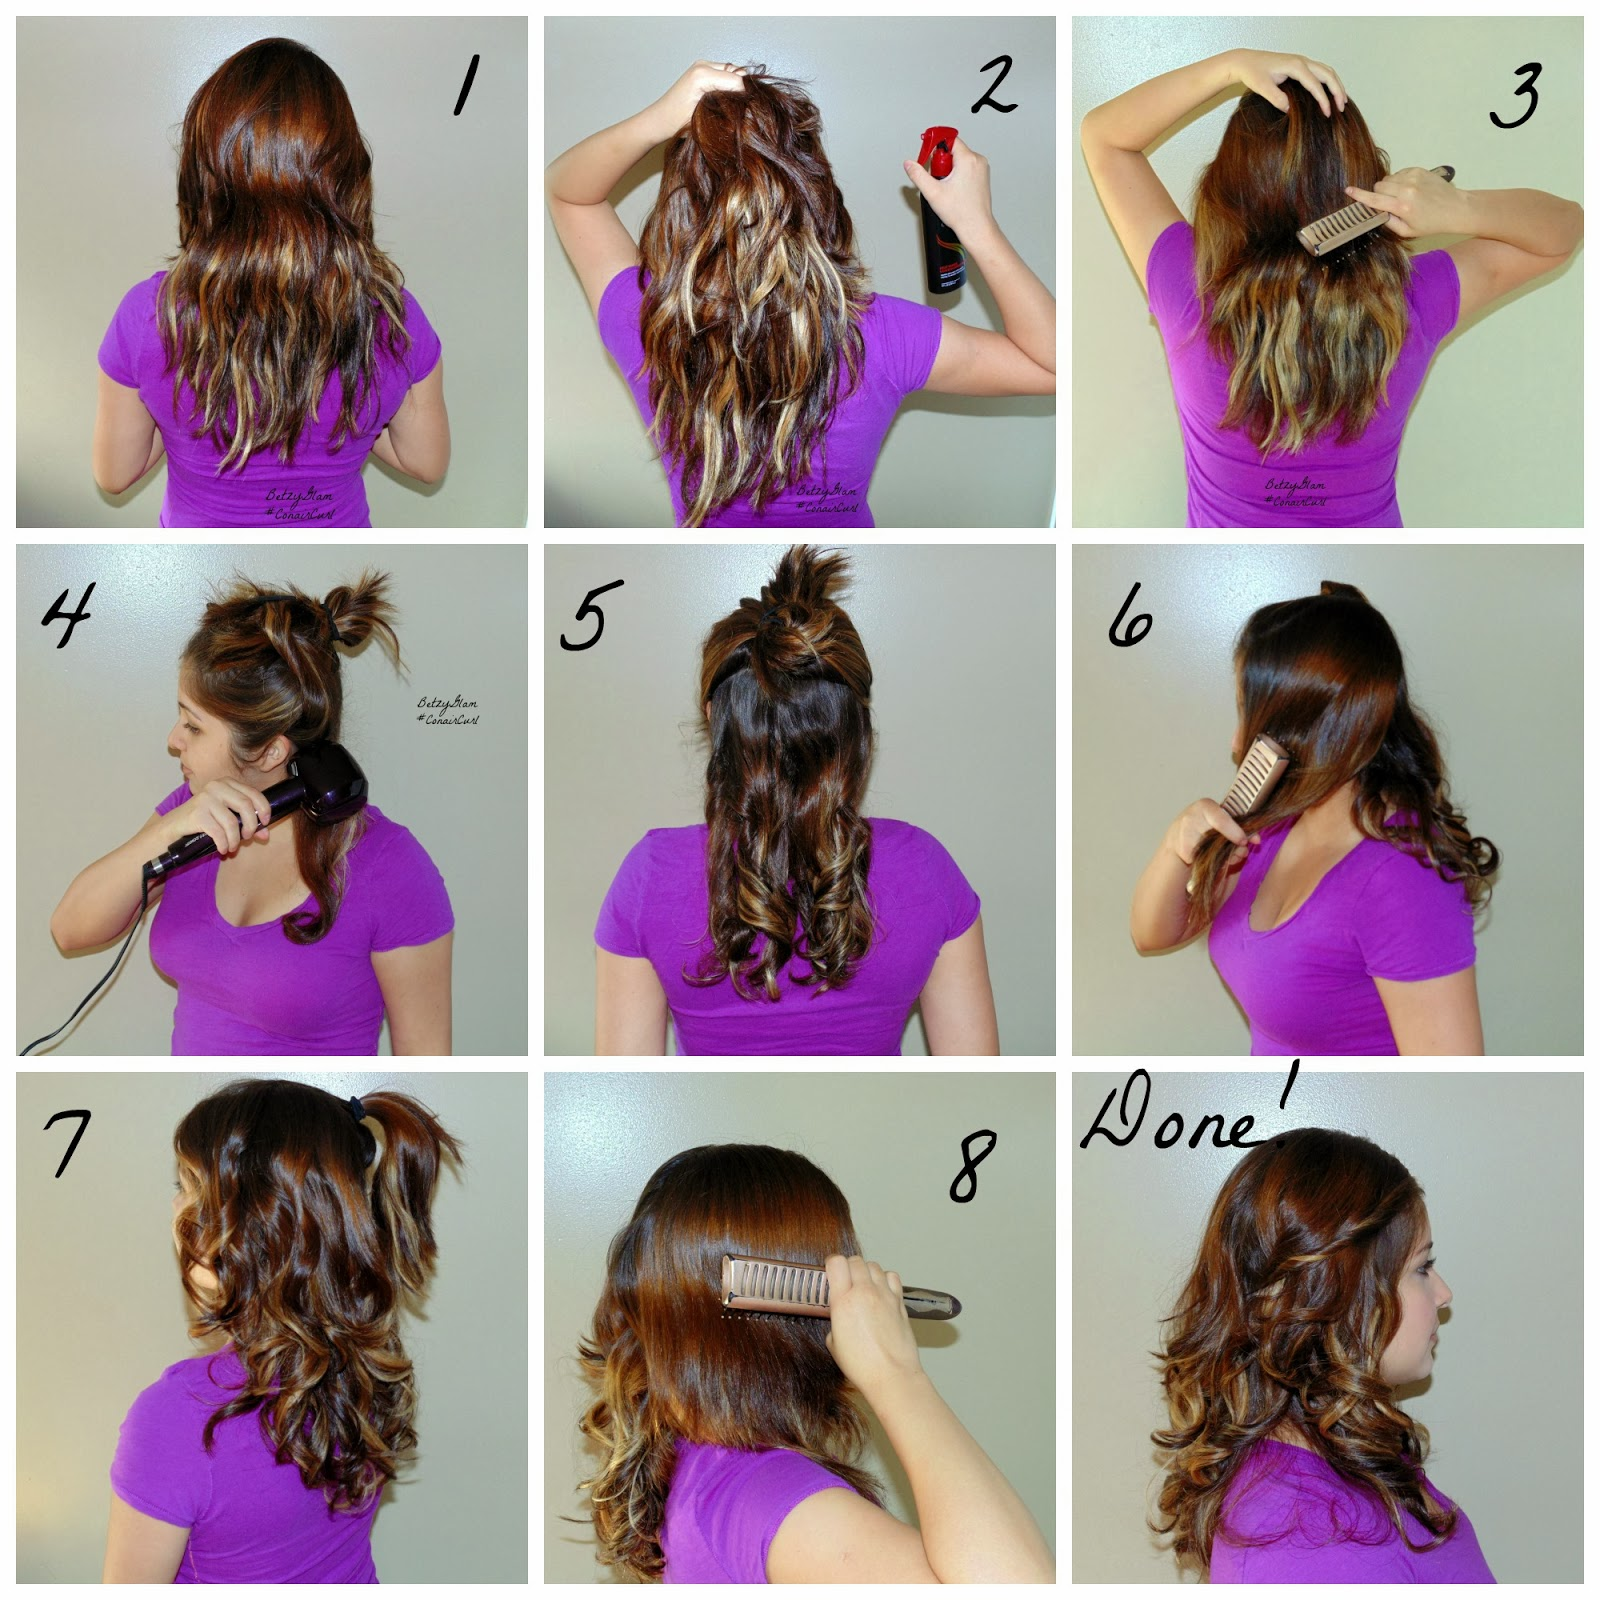 How To Use Miracurl On Shorter Hair Infiniti Pro Conair